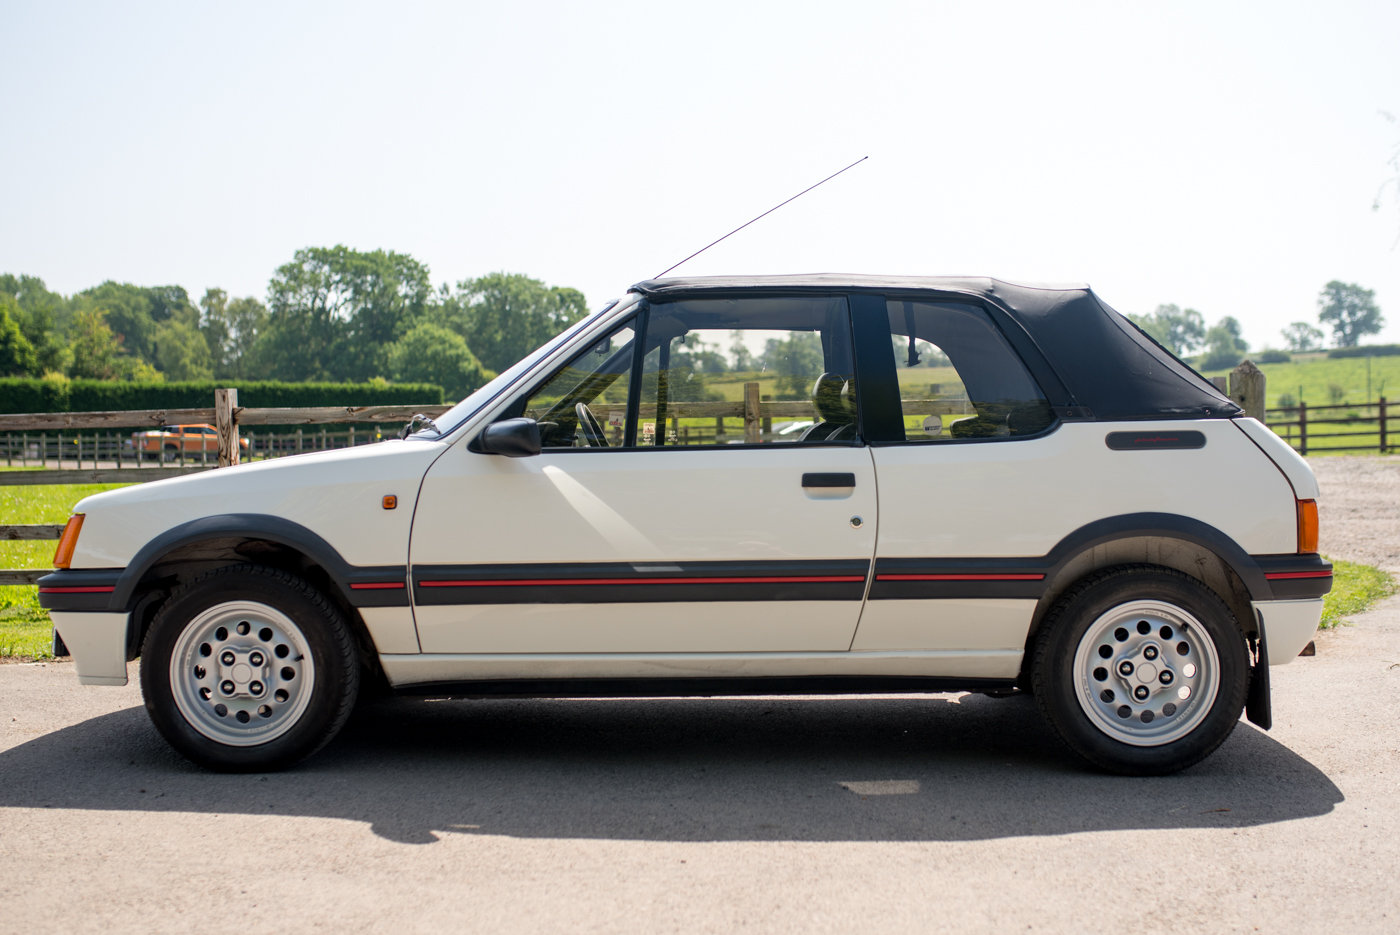 1988 Peugeot 205 CTI 1.6 Convertible For Sale (picture 2 of 6)